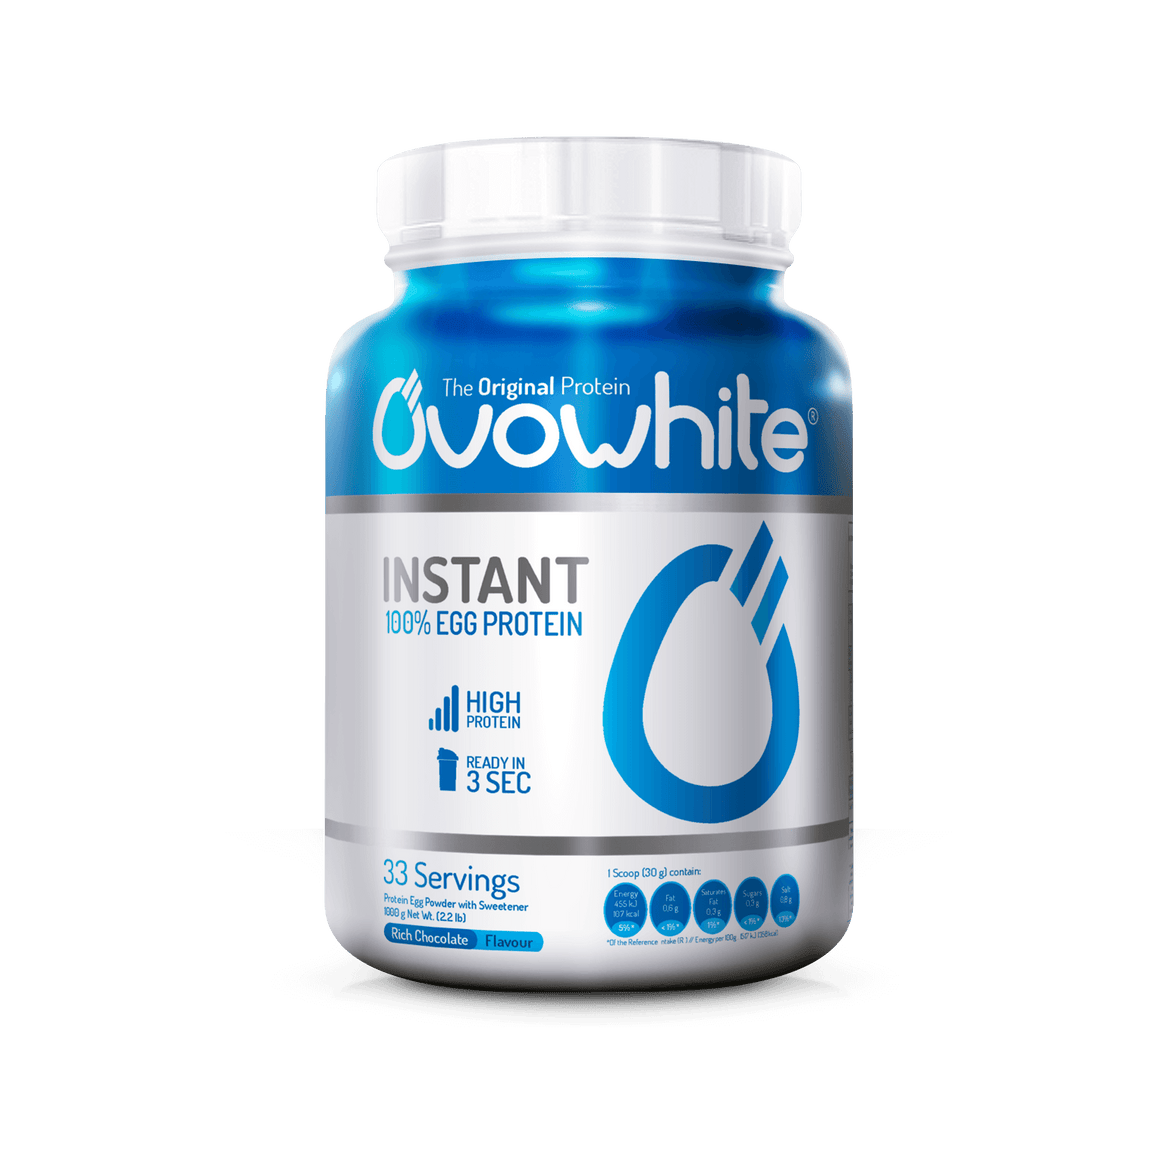 Ovowhite Instant 100% Egg Protein - 1Kg